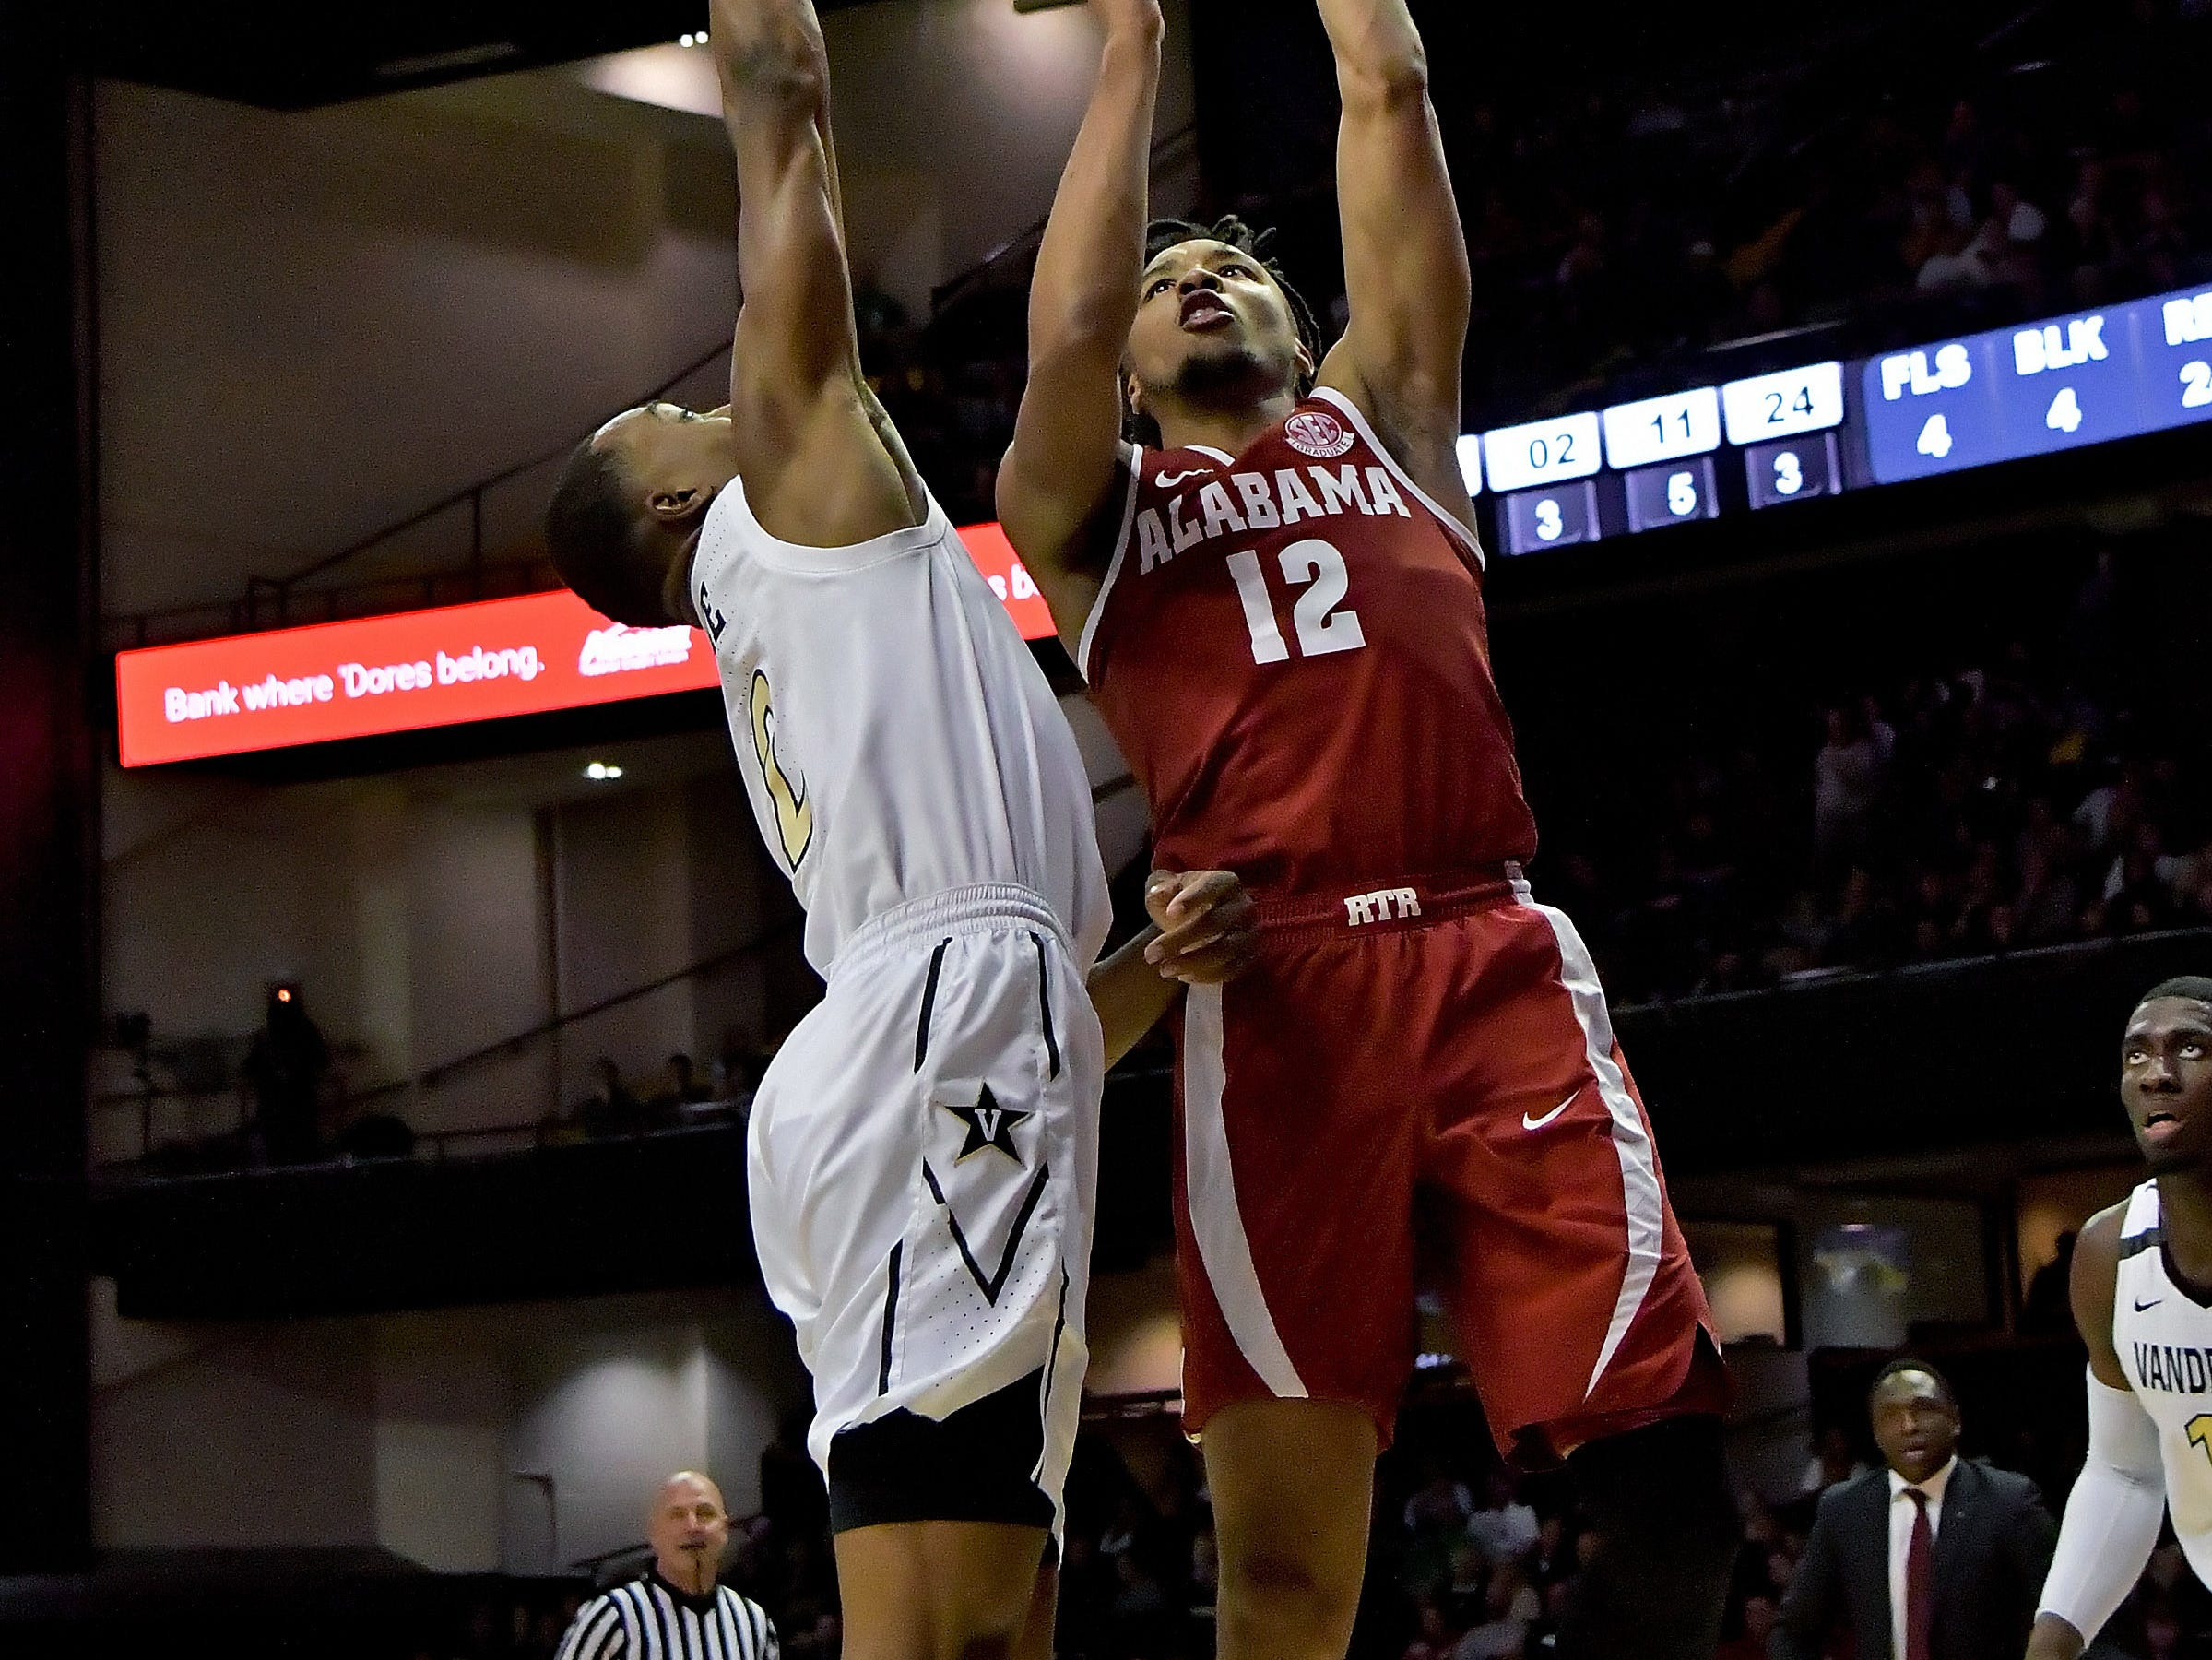 Feb 9, 2019; Nashville, TN, USA; Alabama Crimson Tide guard Dazon Ingram (12) shoots against Vanderbilt Commodores guard Joe Toye (2) during the second half at Memorial Gymnasium. Alabama won 77-67. Mandatory Credit: Jim Brown-USA TODAY Sports